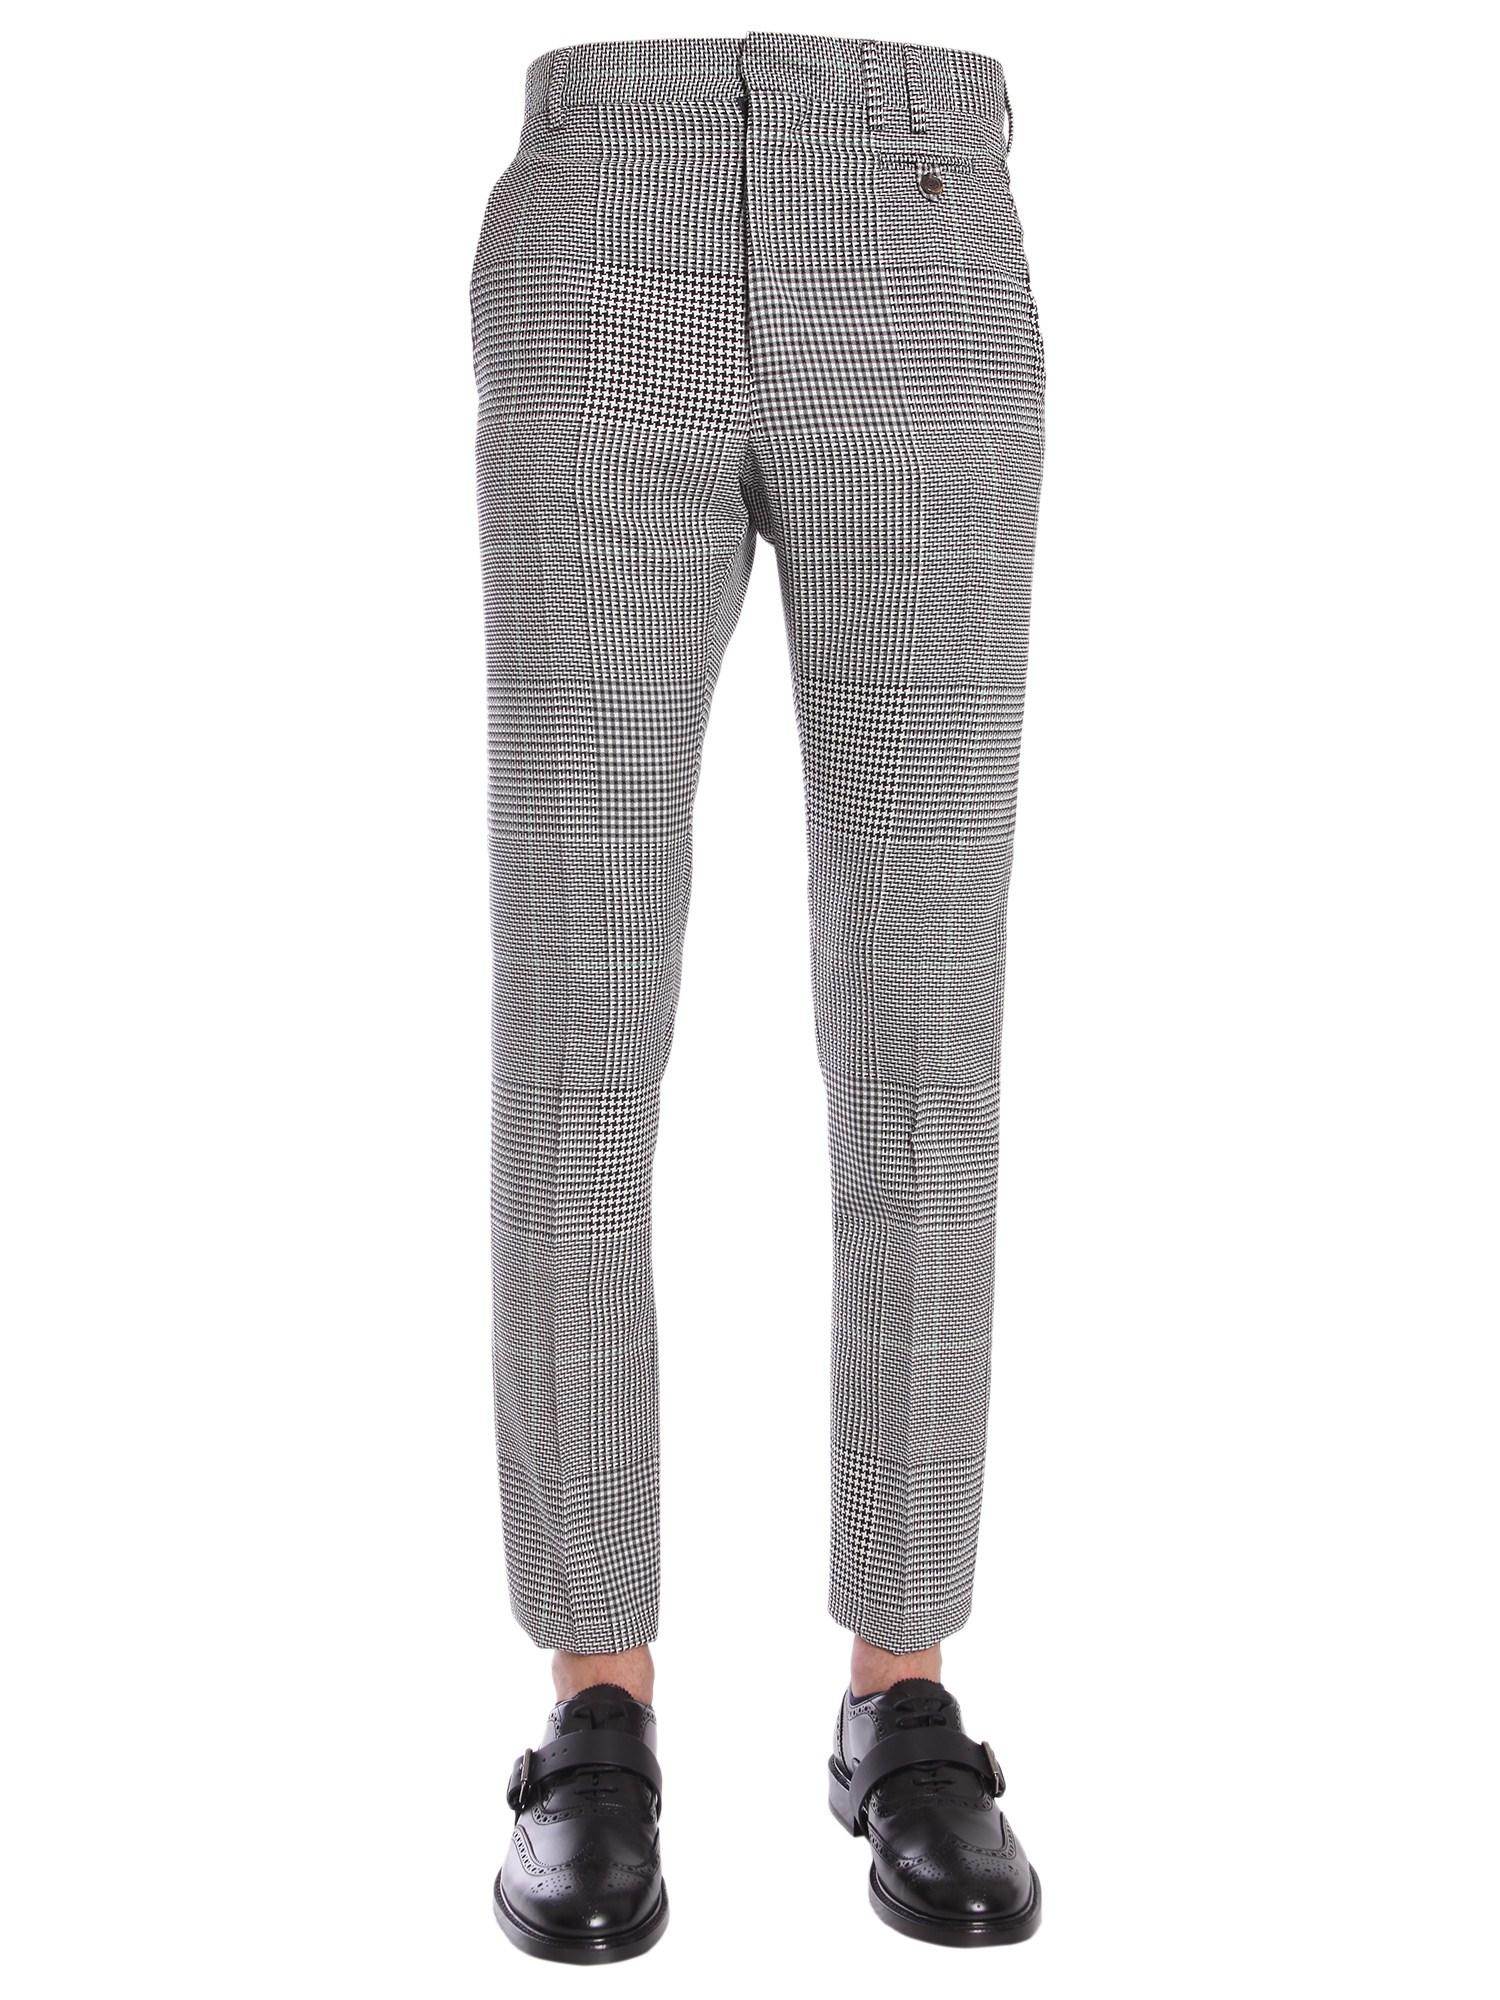 f4063af9c3 Lyst - Vivienne Westwood Classic Prince Of Wales Wool Trousers in ...